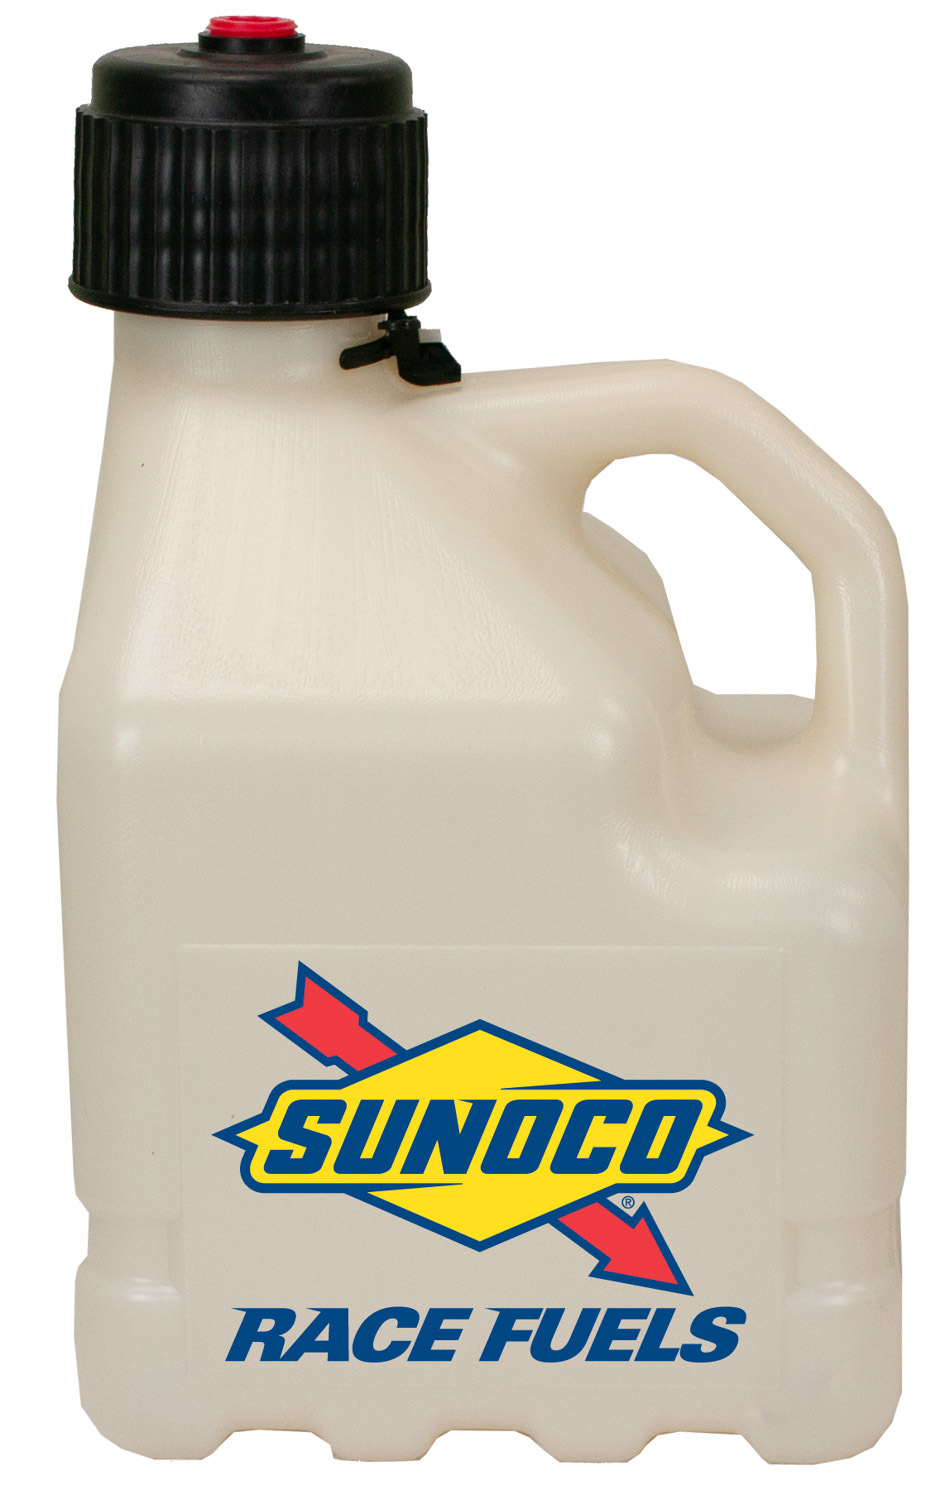 Sunoco Race Jugs R3100CL Utility Jug, 3 gal, O-Ring Seal Cap, Flip-Up Vent, Square, Plastic, Clear, Each